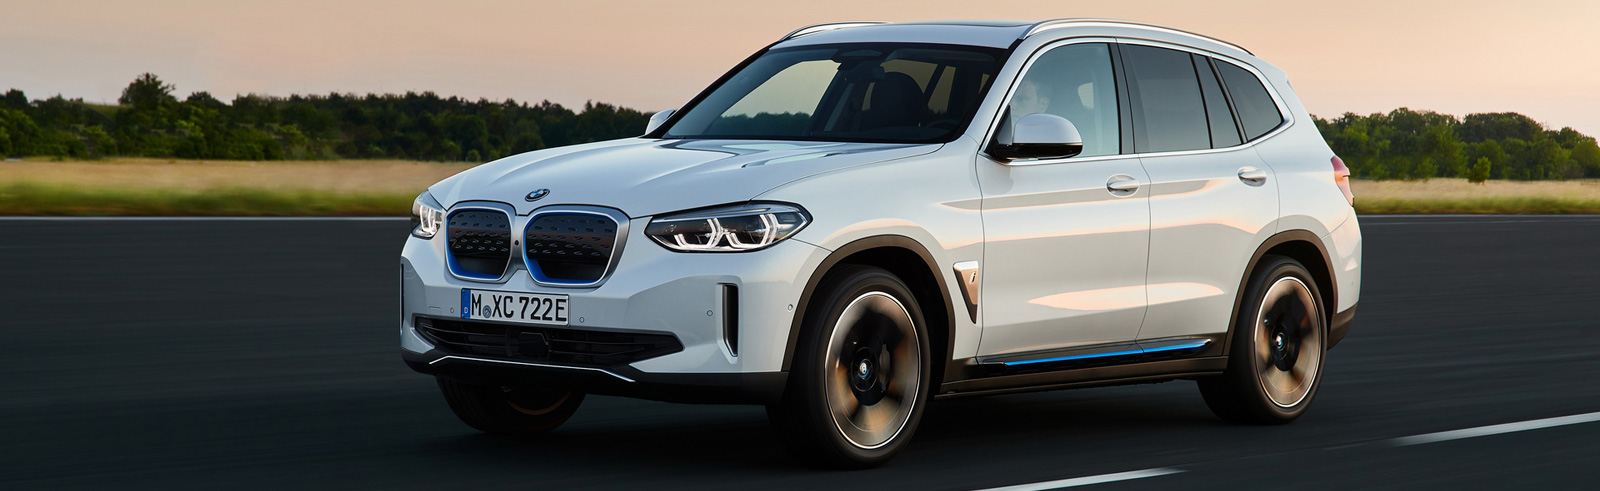 BMW iX3 Premier Edition or BMW iX3 Premier Edition Pro pricing and launch date for the UK announced